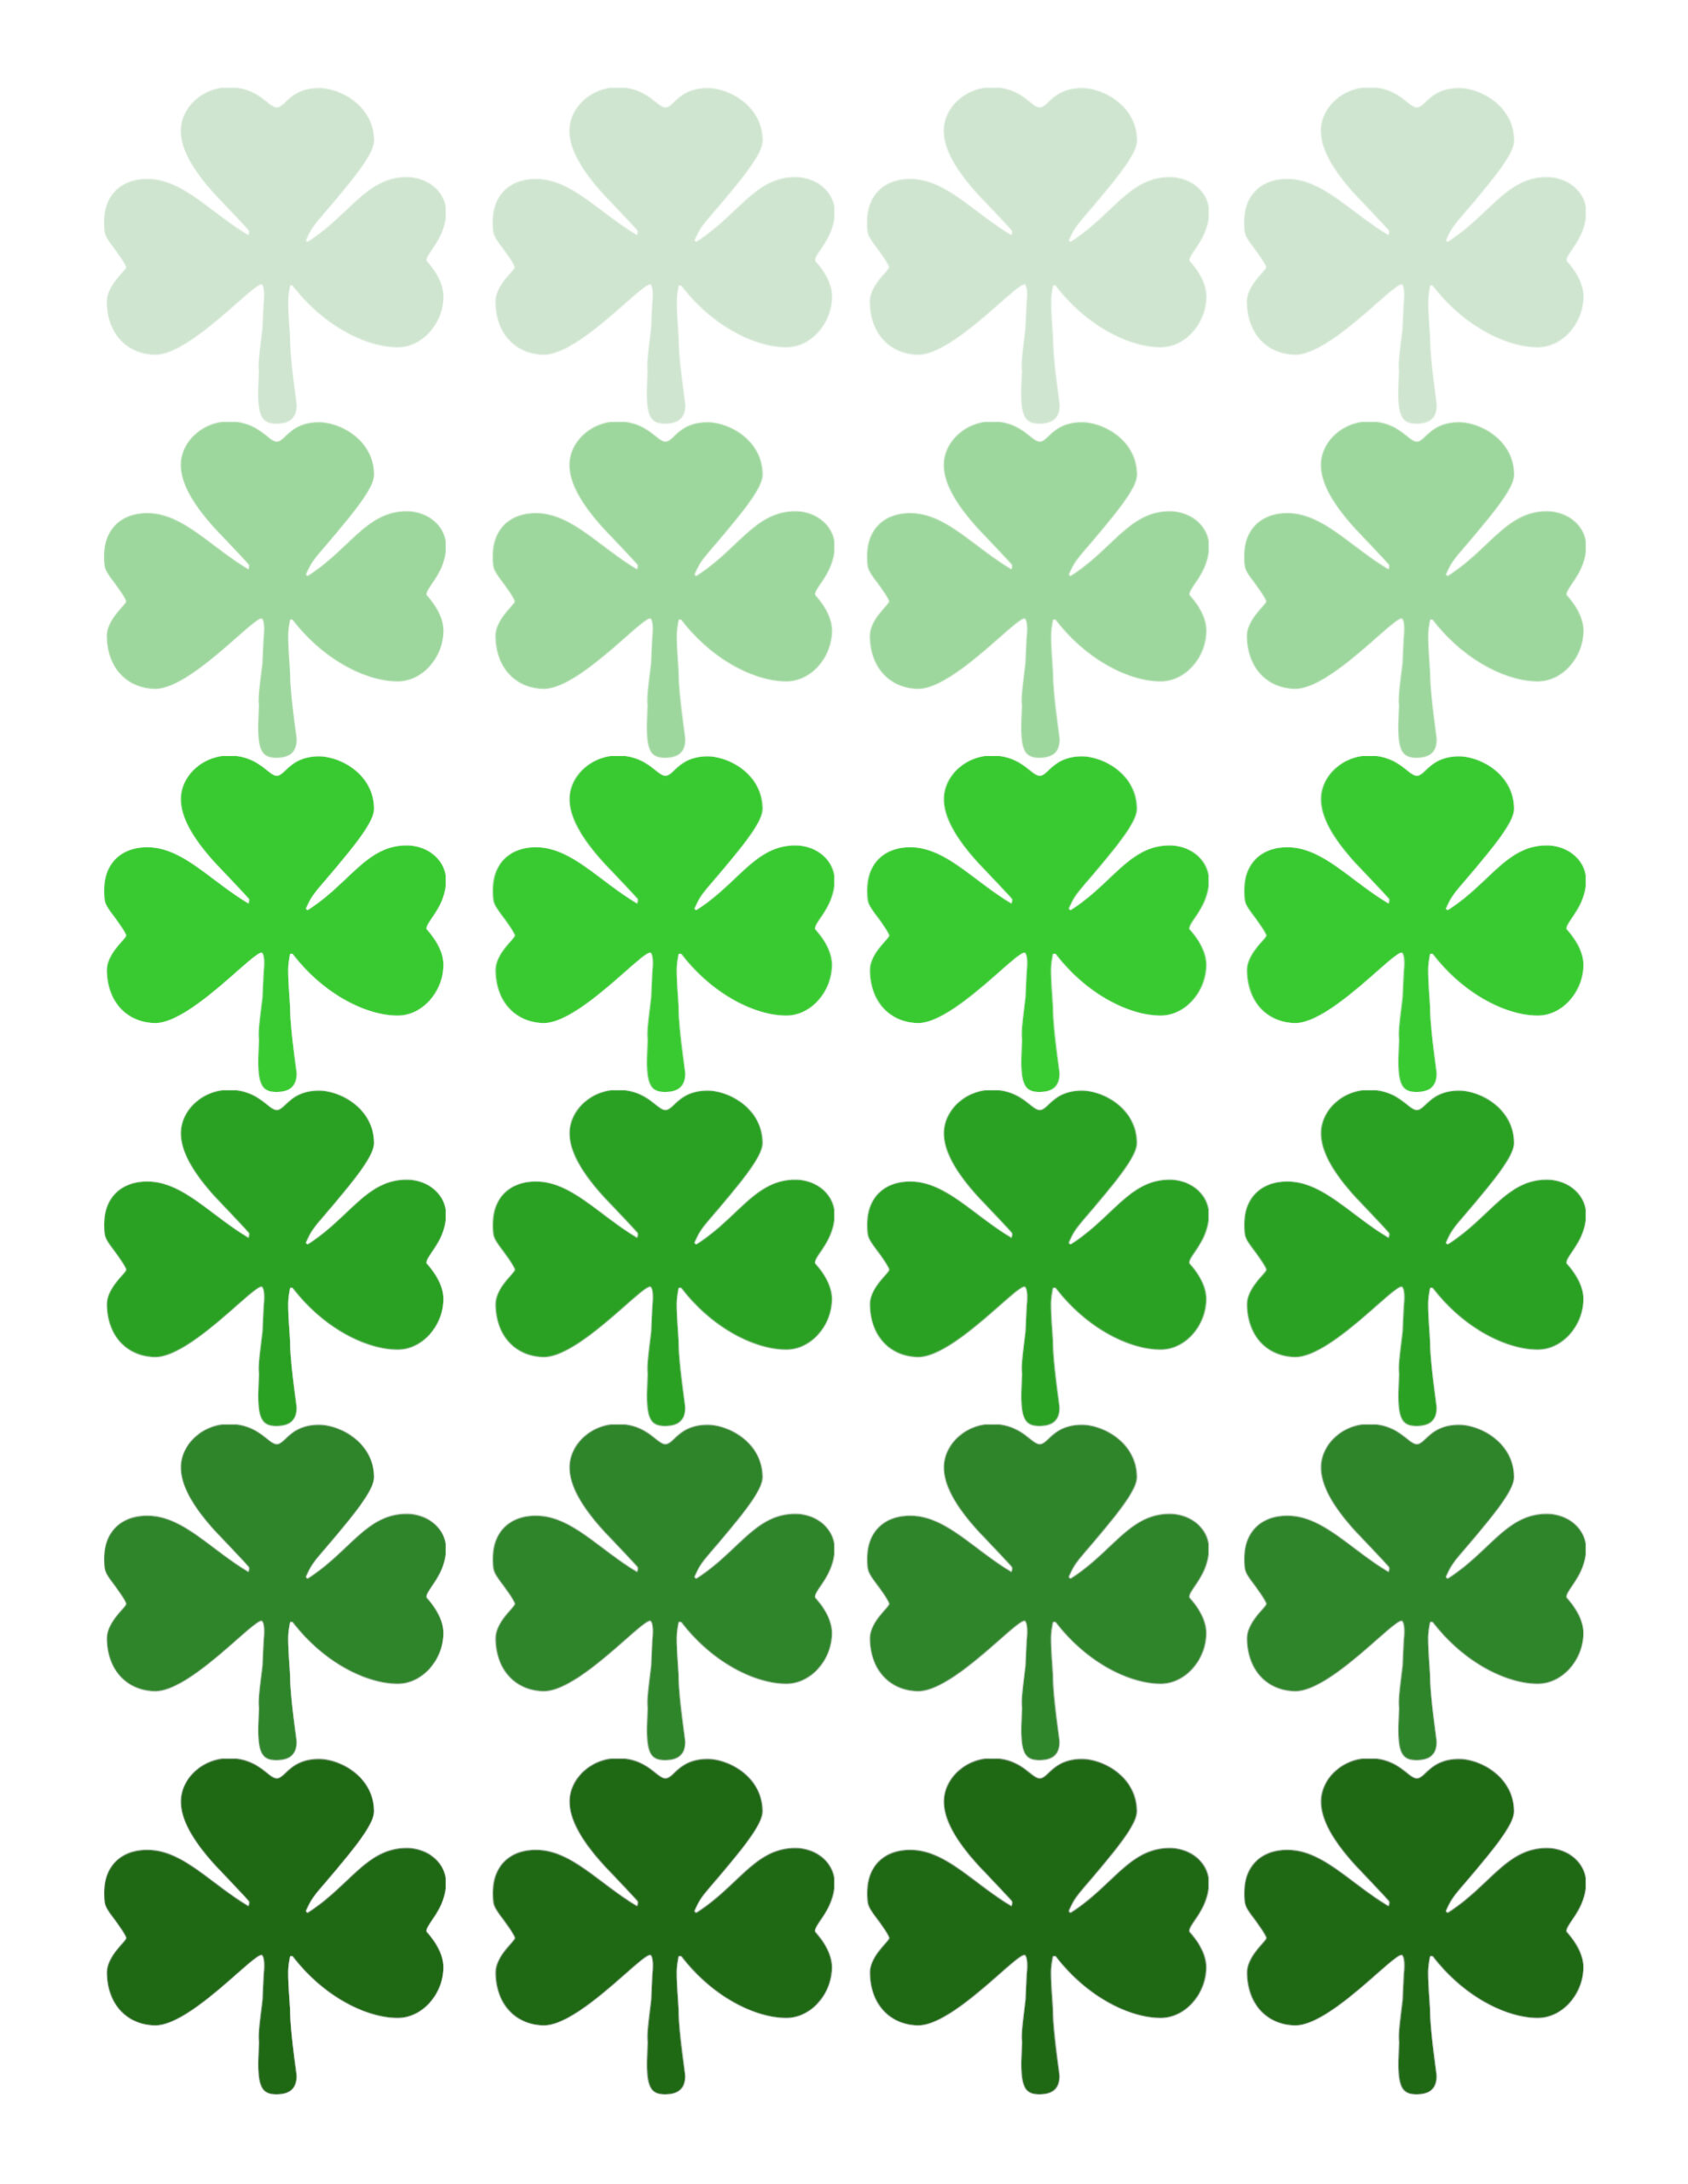 event patricks decorations decor paddys star st day all patrick las planner s saint events vegas